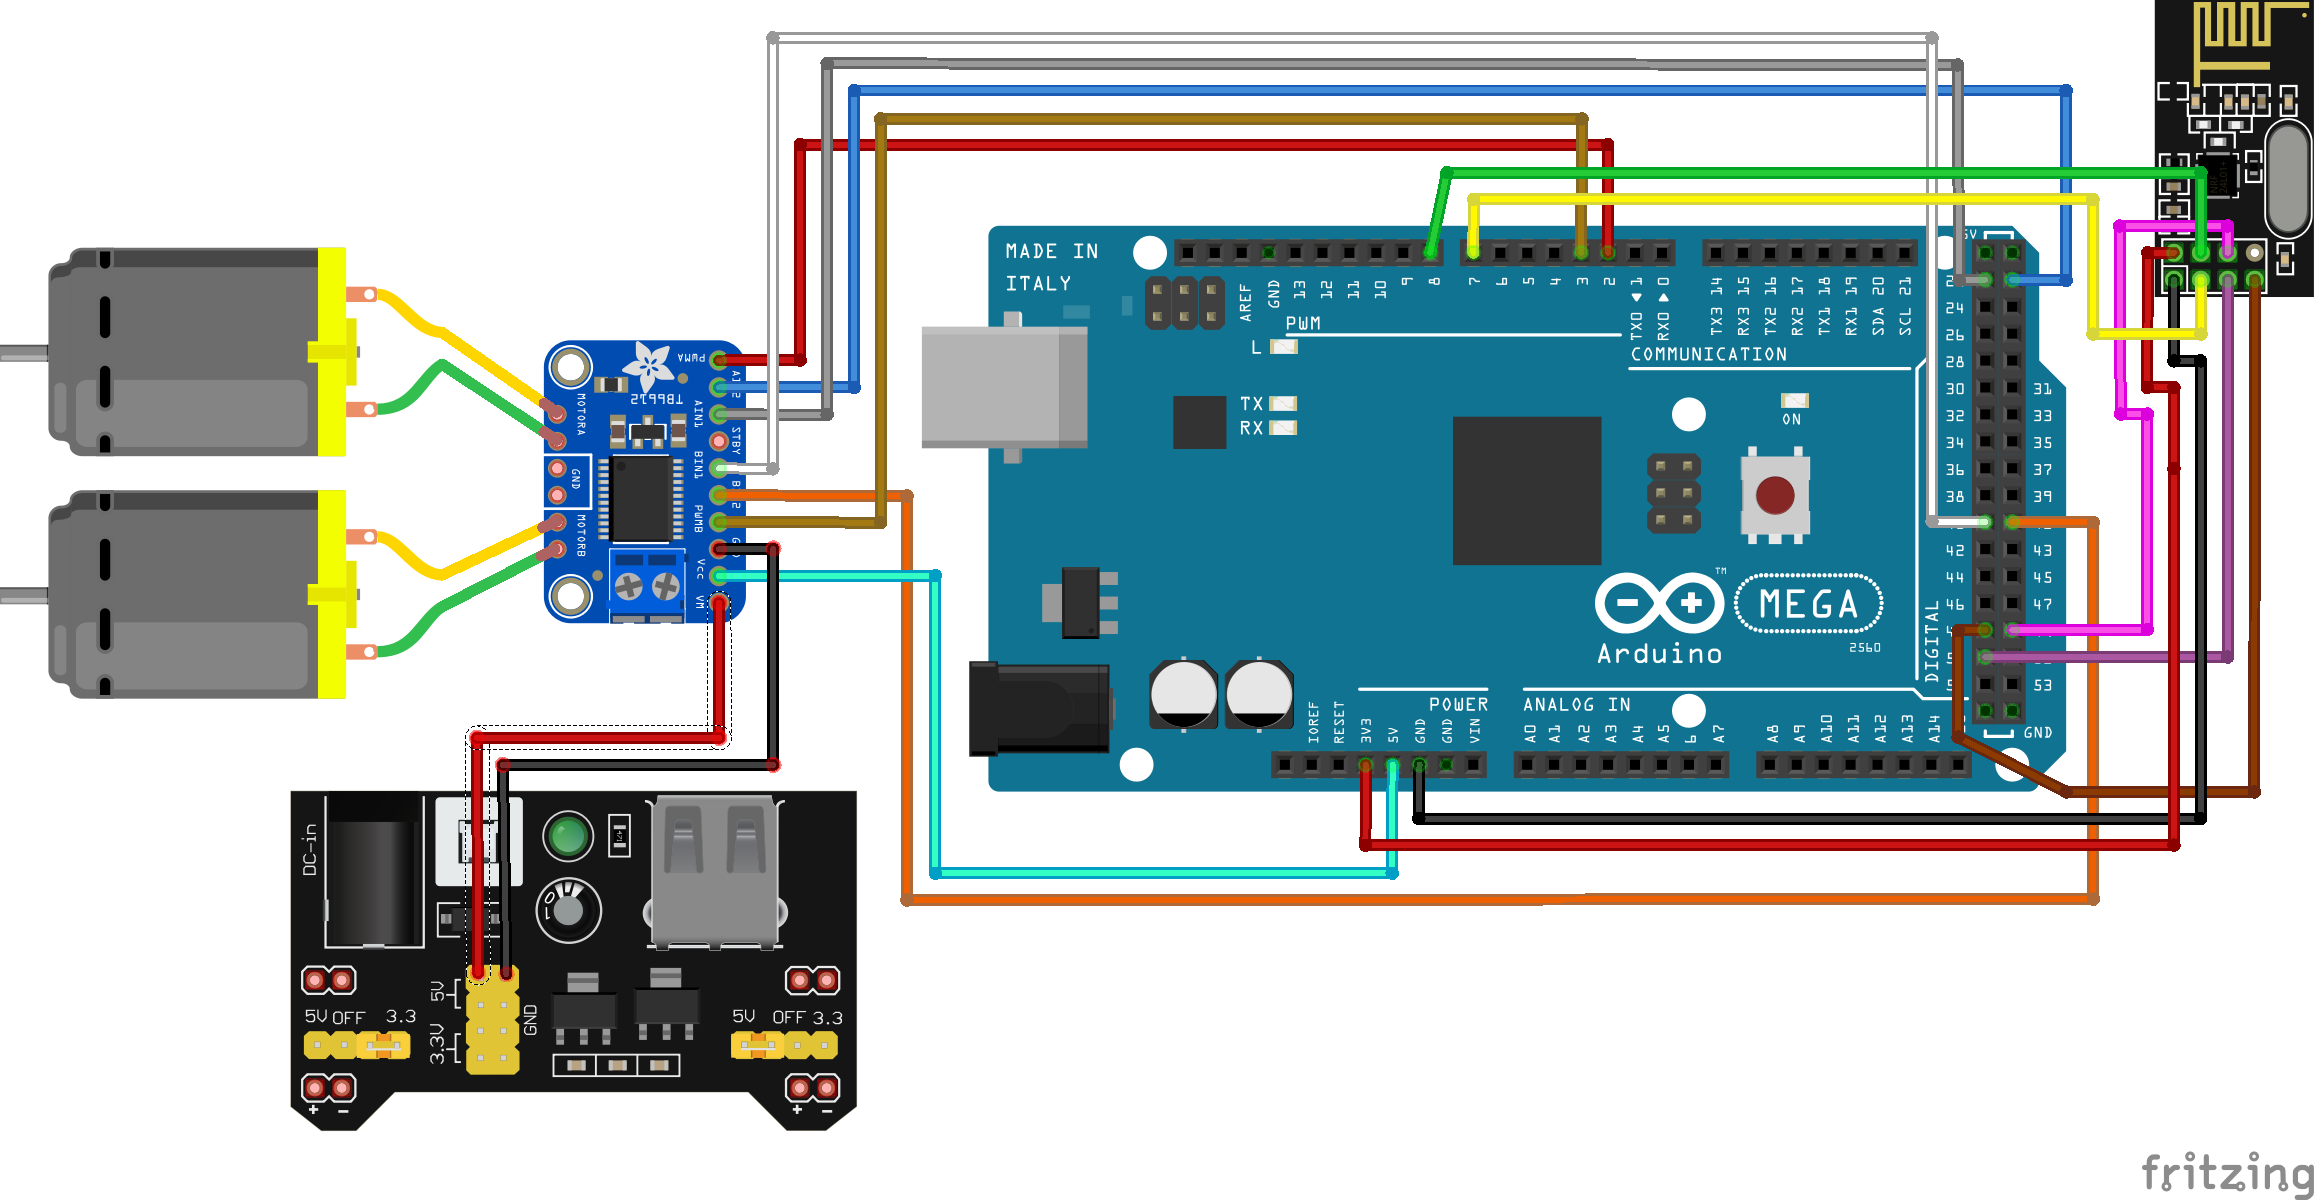 GitHub - ProjetSolideP12/Projet-de-synthese-P12: WiBot: a tiny voice ...